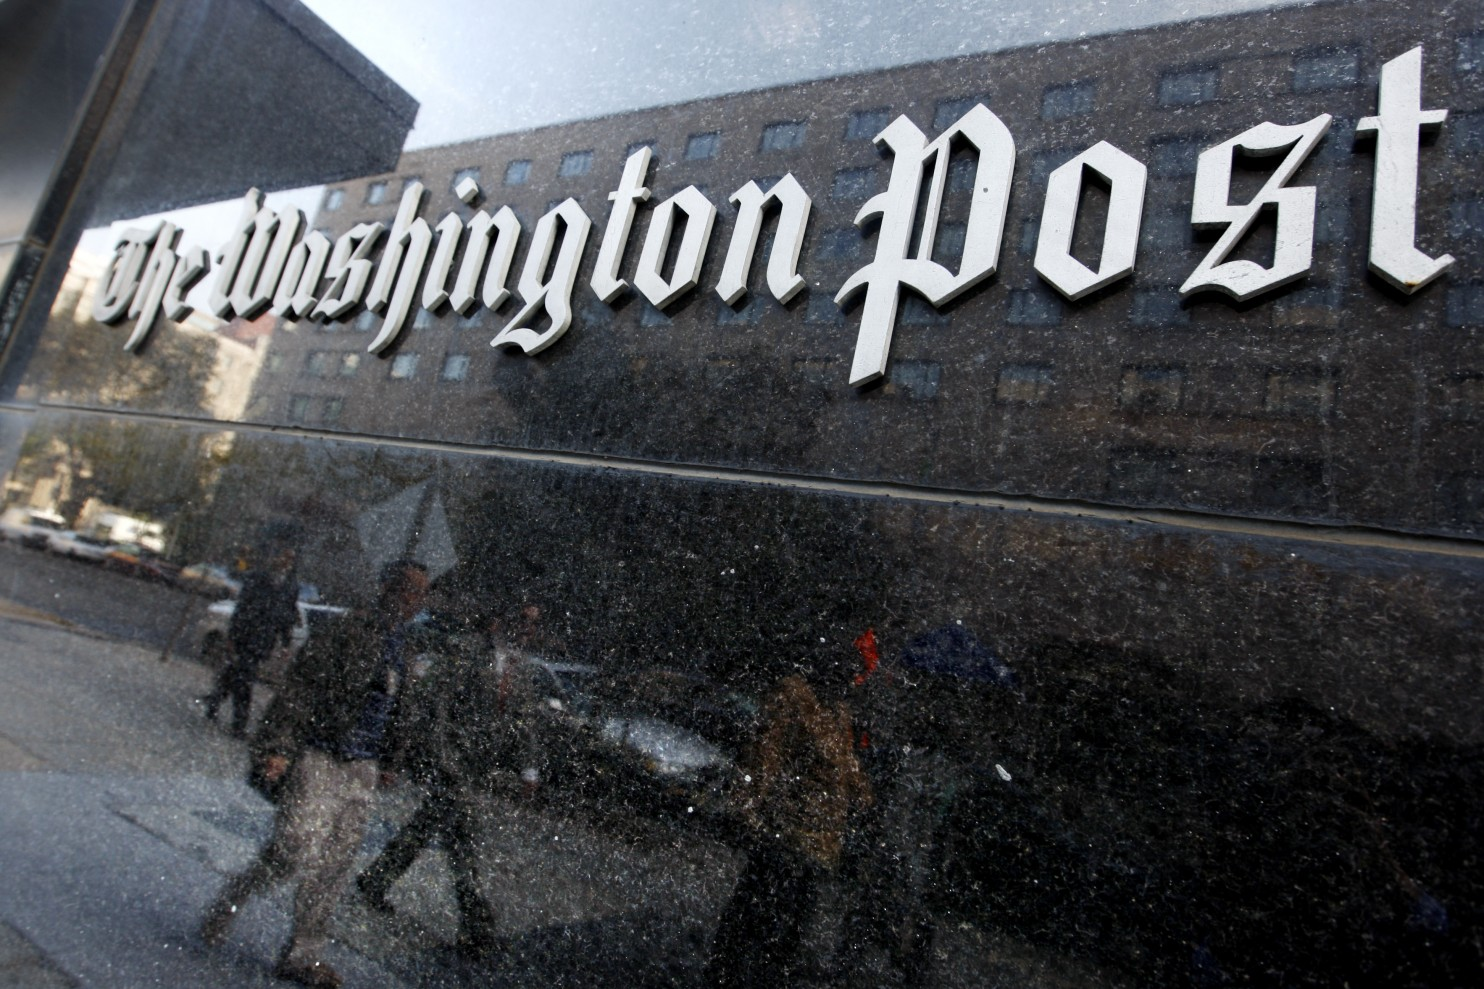 The Washington Post y sus boletines de noticias